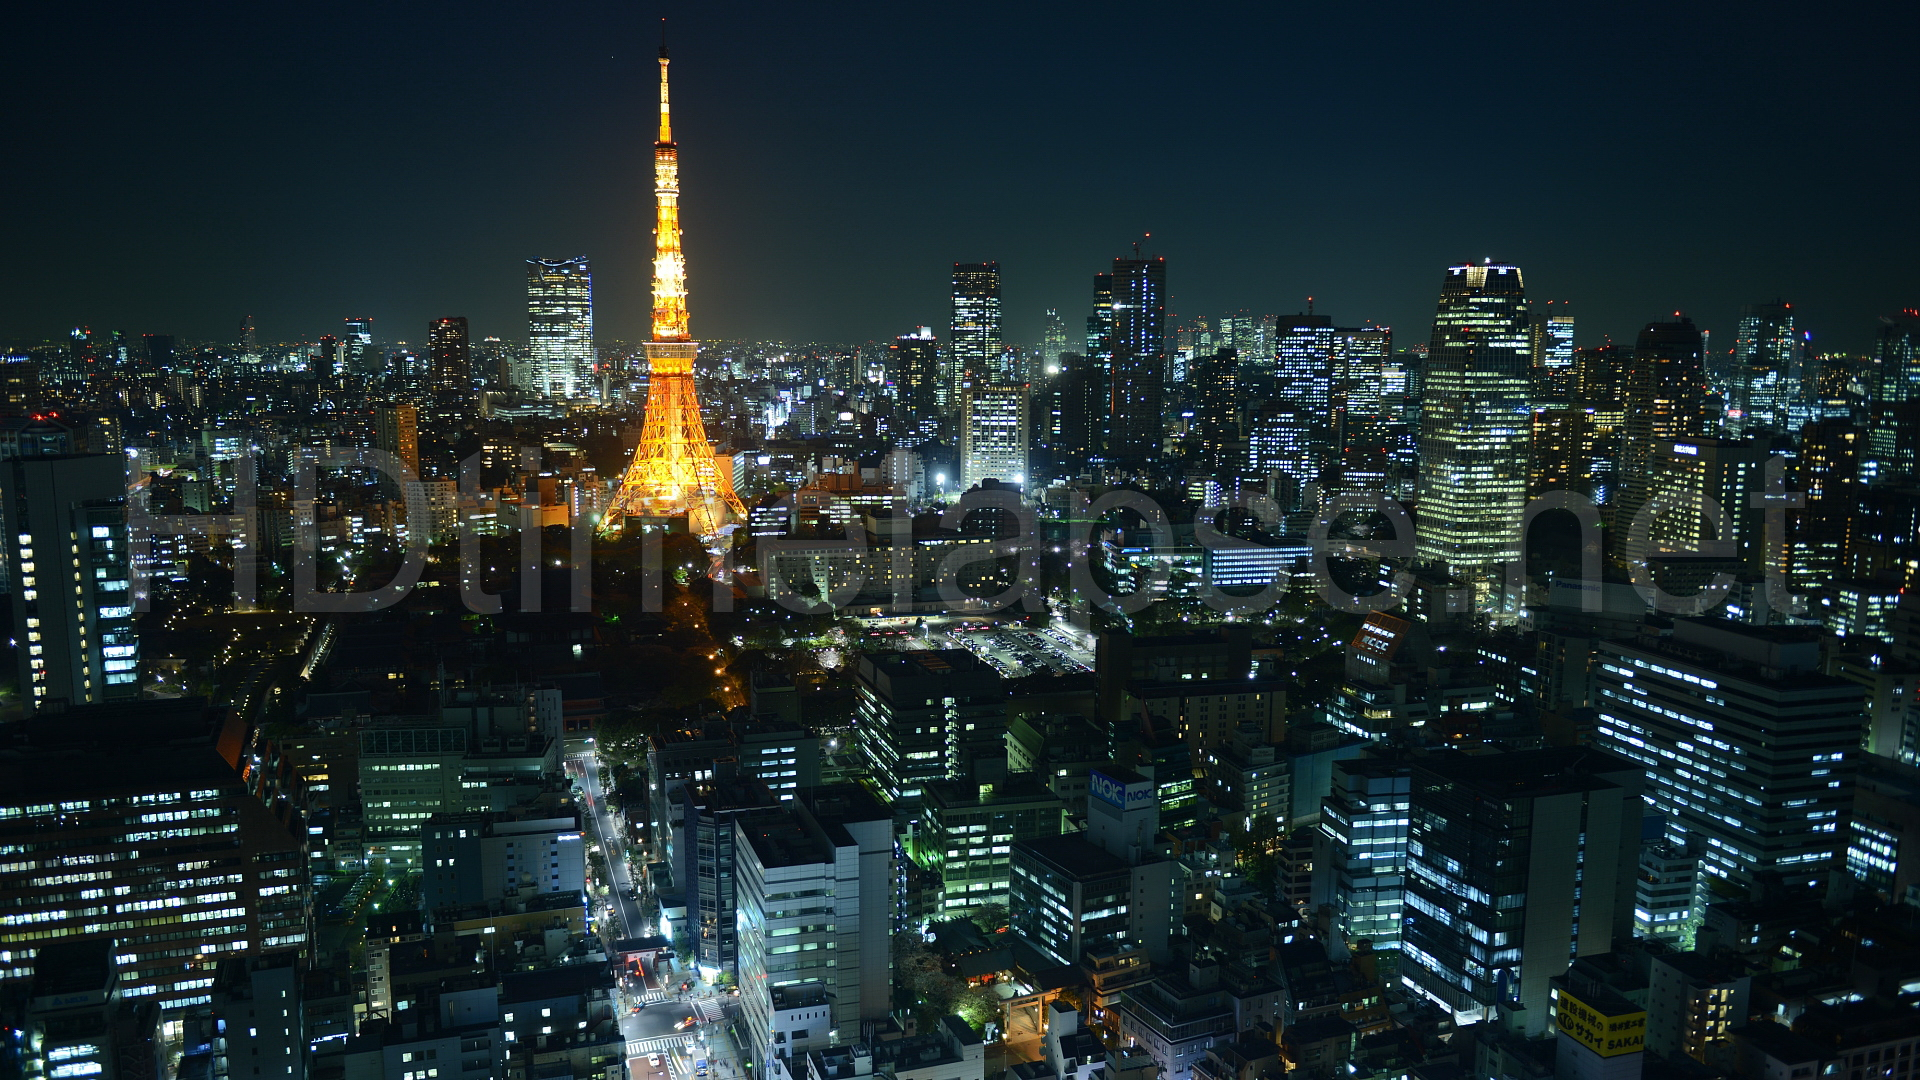 Ultra HD 4K Video Time Lapse Stock Footage   Aerial Cityscape of Tokyo 1920x1080